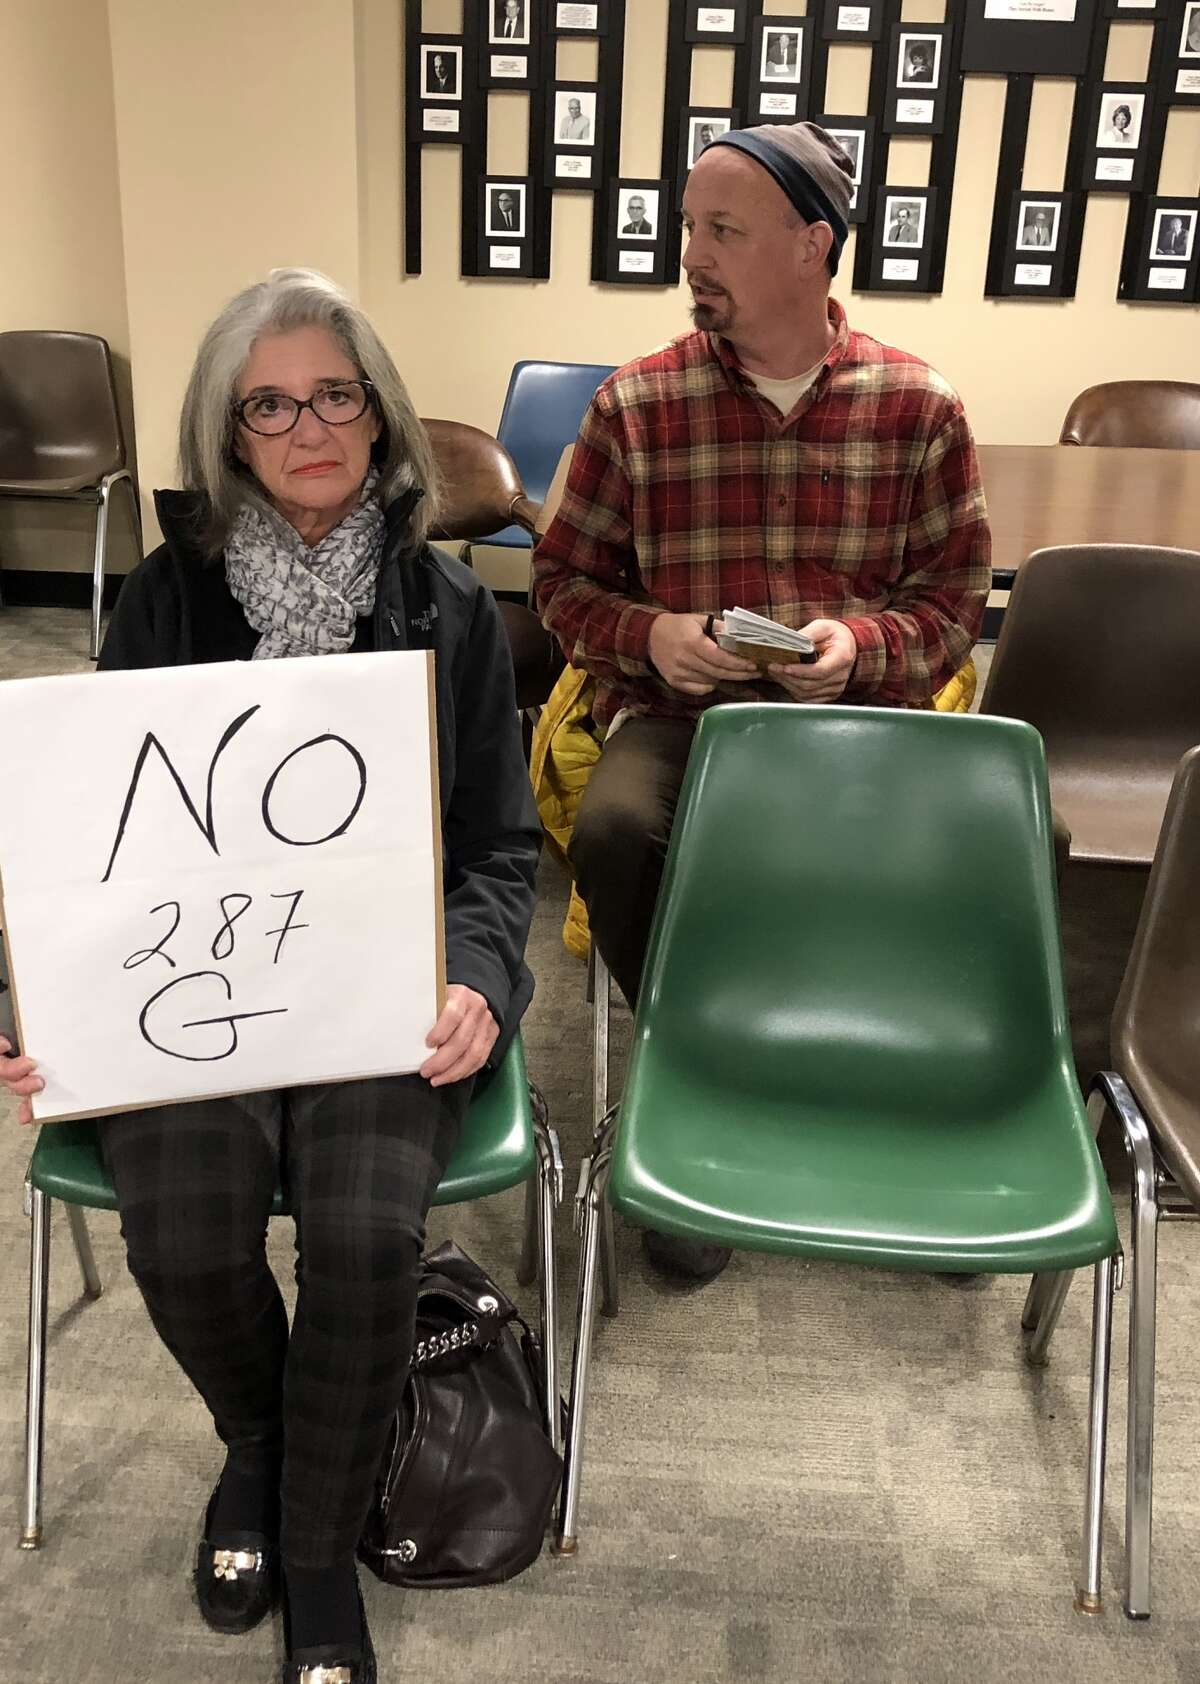 Rensselaer County residents attend a meeting a public hearing to speak out against Sheriff Patrick Russo's ICE 287(g) application on Tuesday, Nov. 28, 2017,